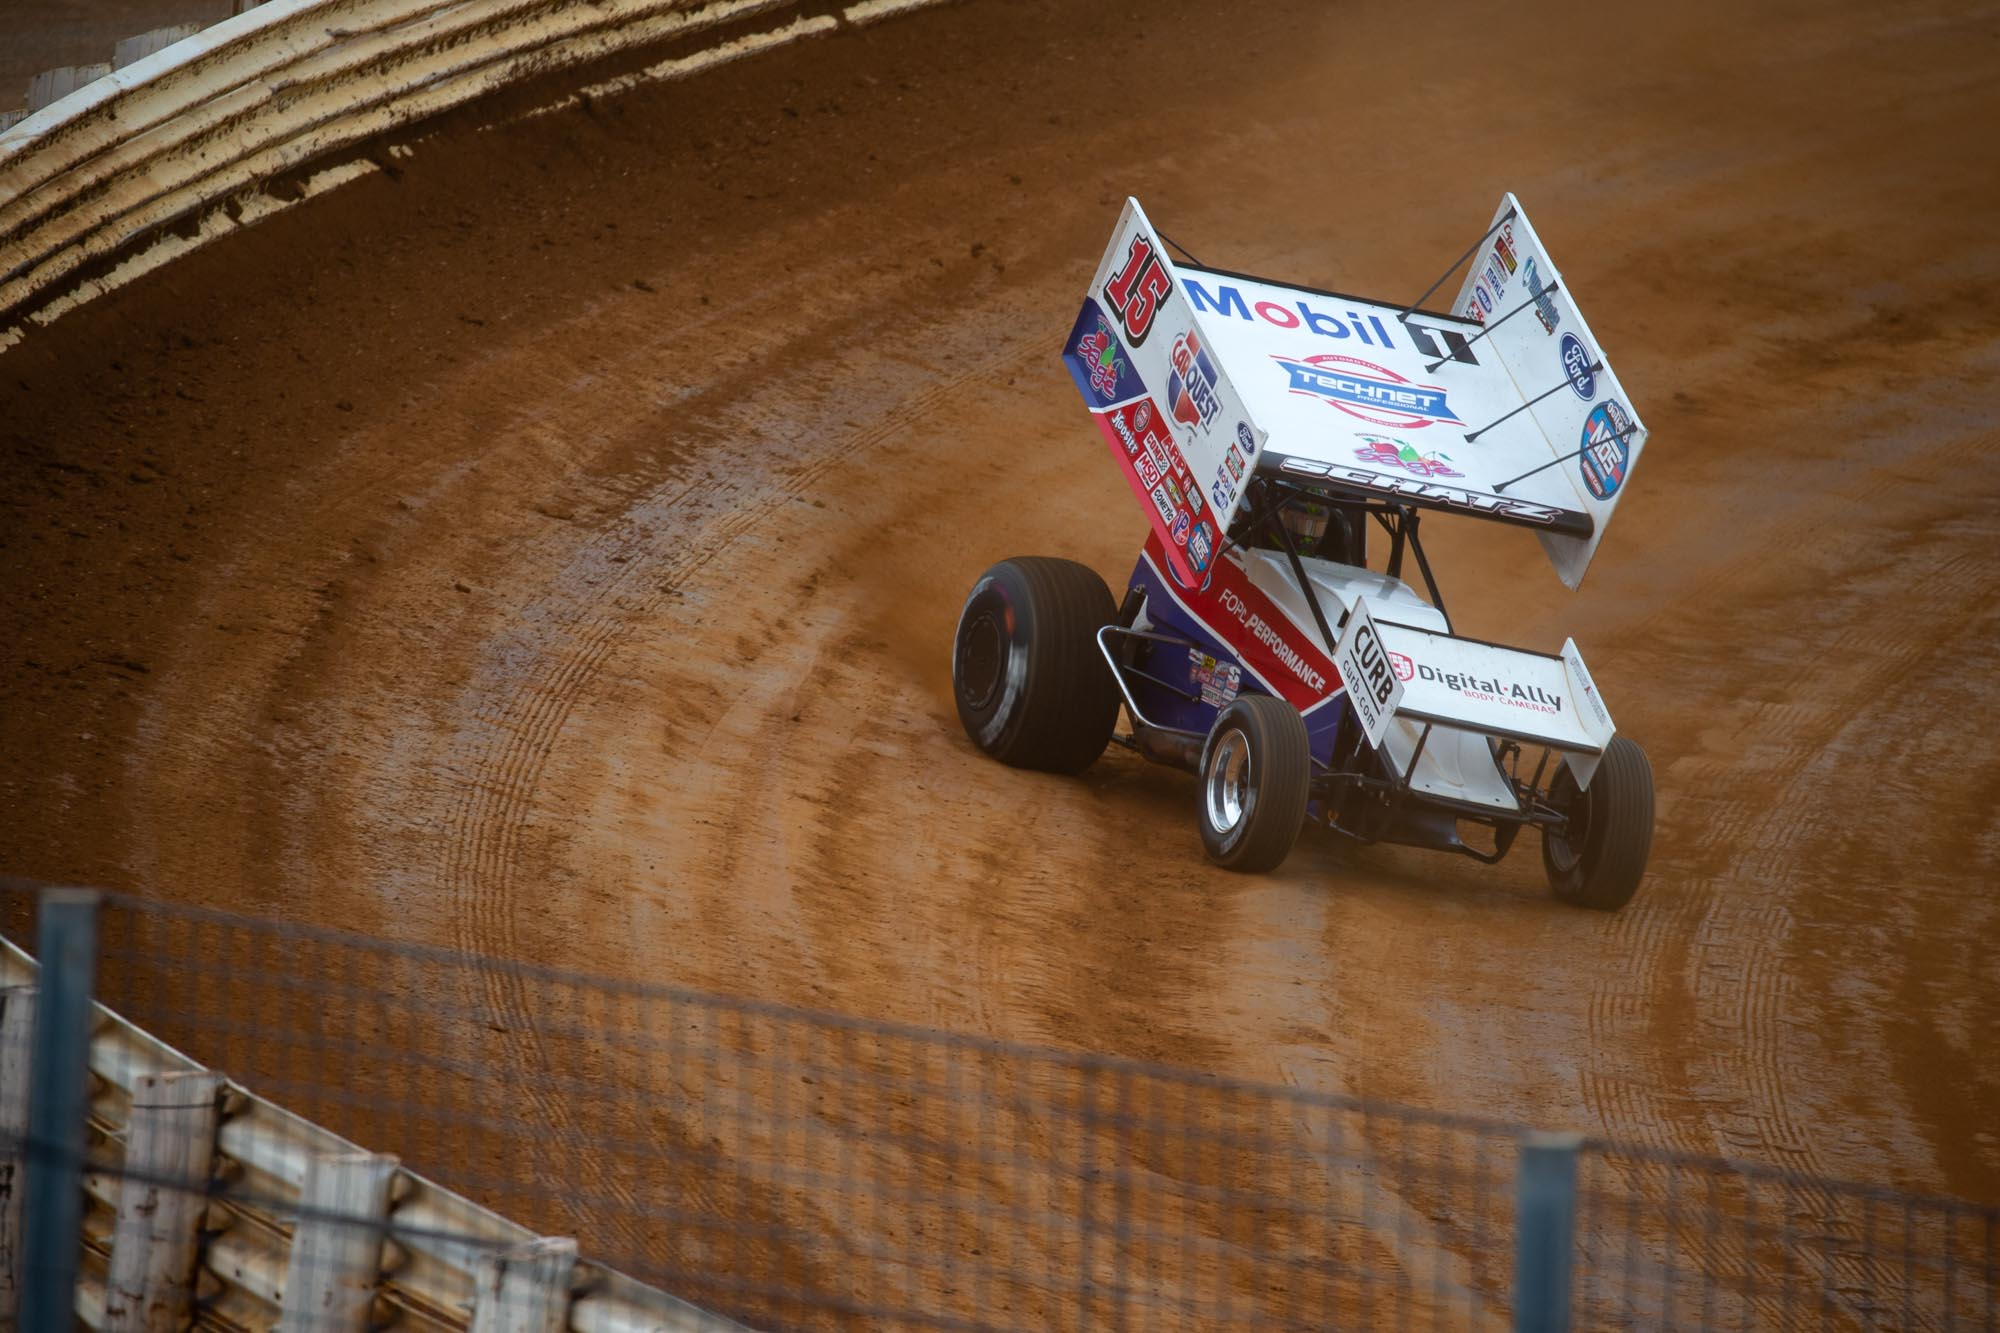 donny schatz, tony stewart racing, world of outlaws, sprint cars, williams grove speedway, national open